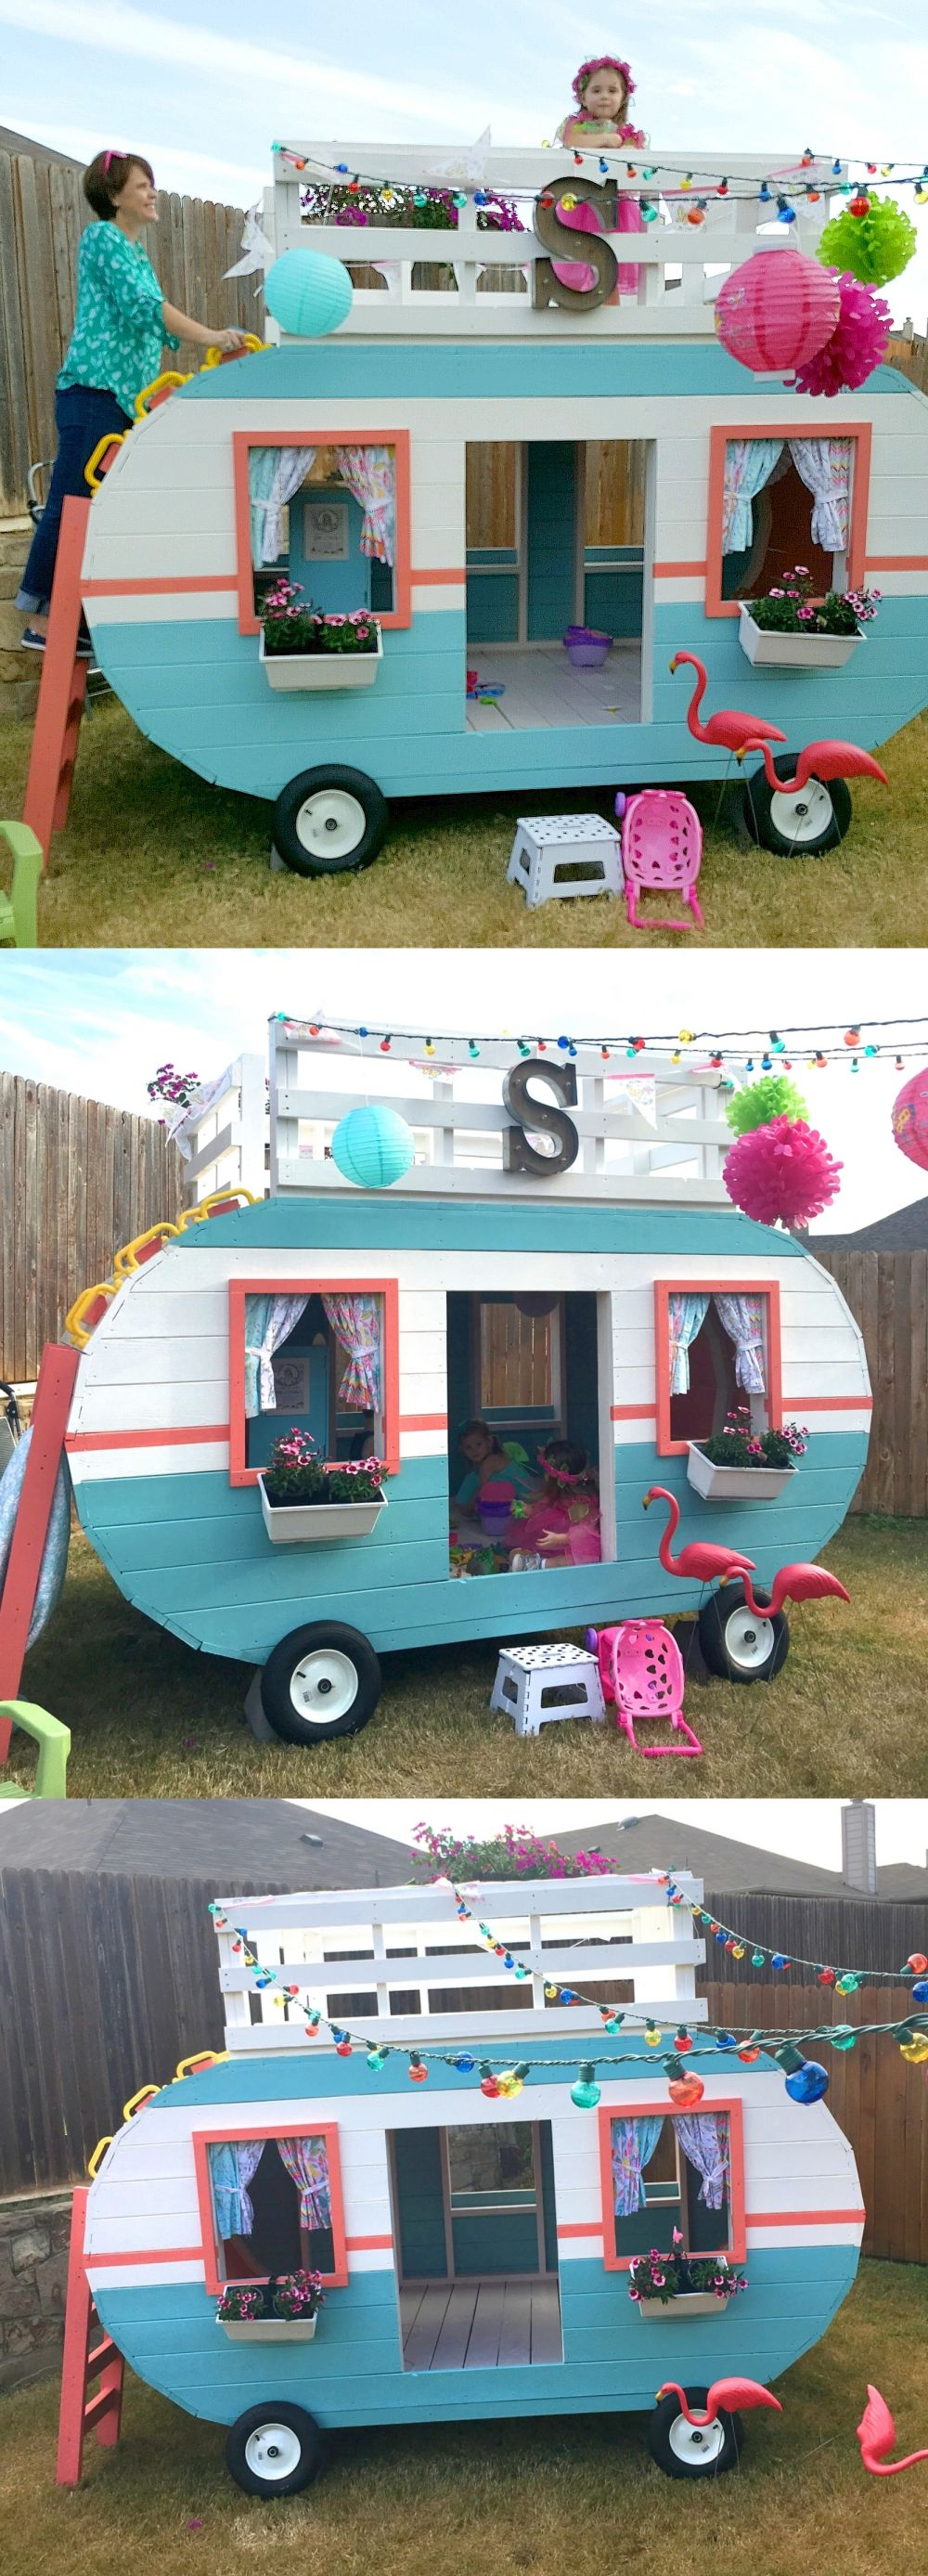 Happy Camper Playhouse Plan 2‑Sizes Sold Separately